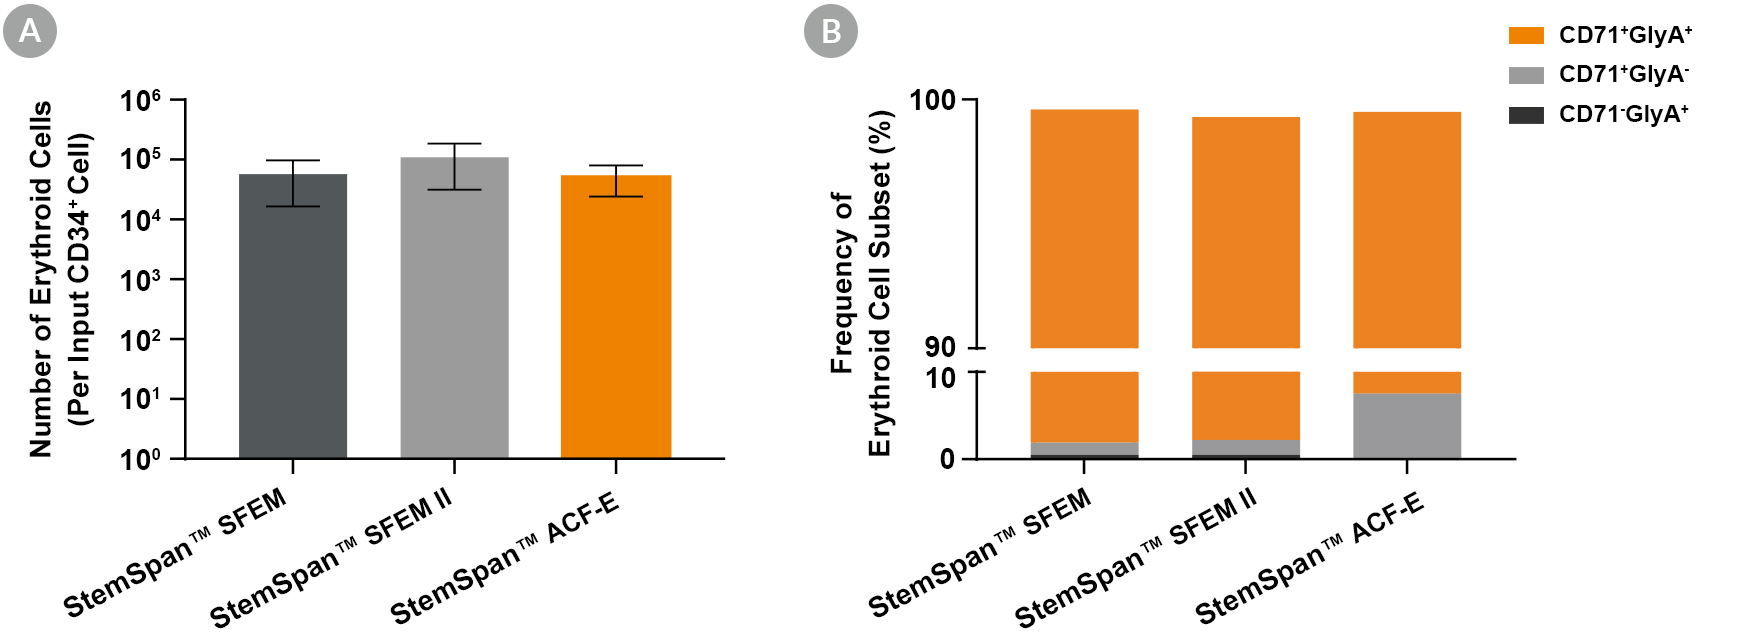 Thousands of Erythroid Cells are Produced Per Input Human CB-Derived CD34+ Cell When Cultured in StemSpan™ Media Containing StemSpan™ Erythroid Expansion Supplement